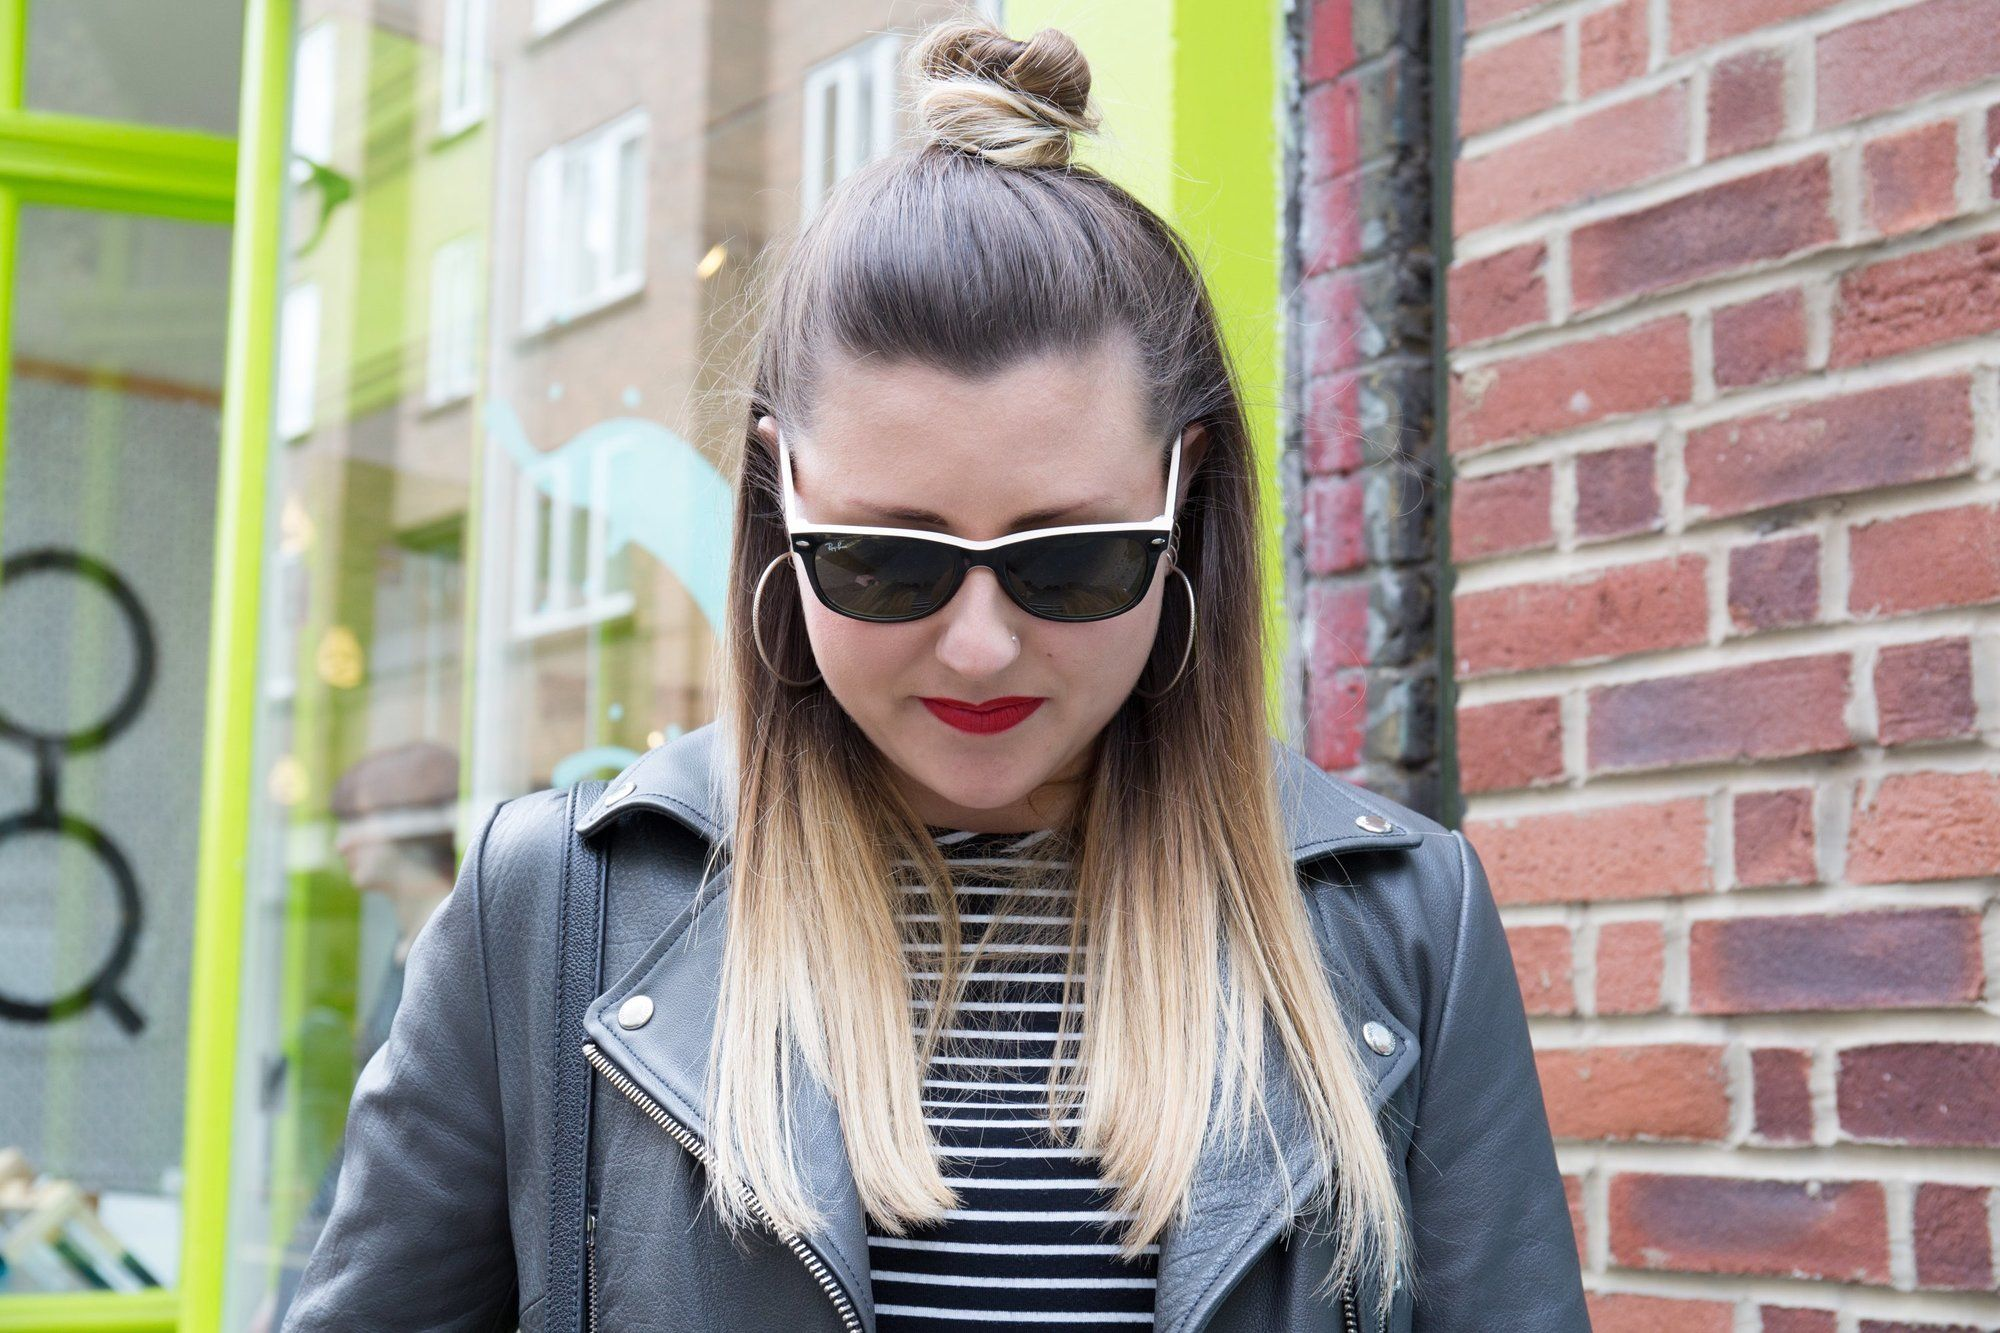 Front view of a woman with ombre hair, red lipstick and sunglasses